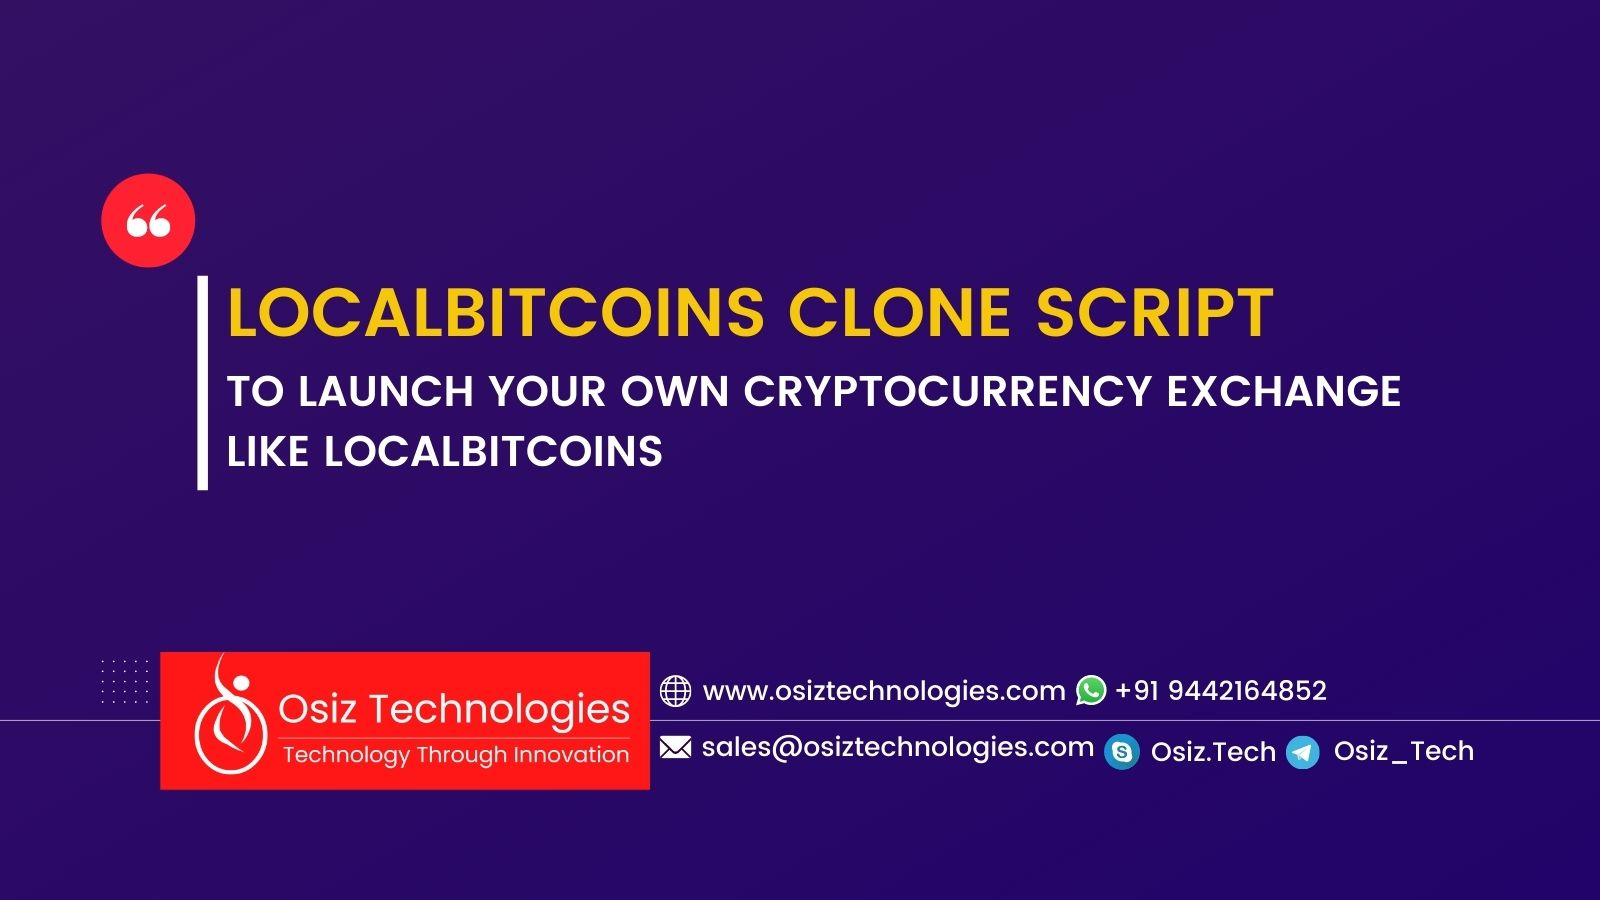 Localbitcoins Clone Script - Start Your P2P Exchange Platform With Secured Escrow Application